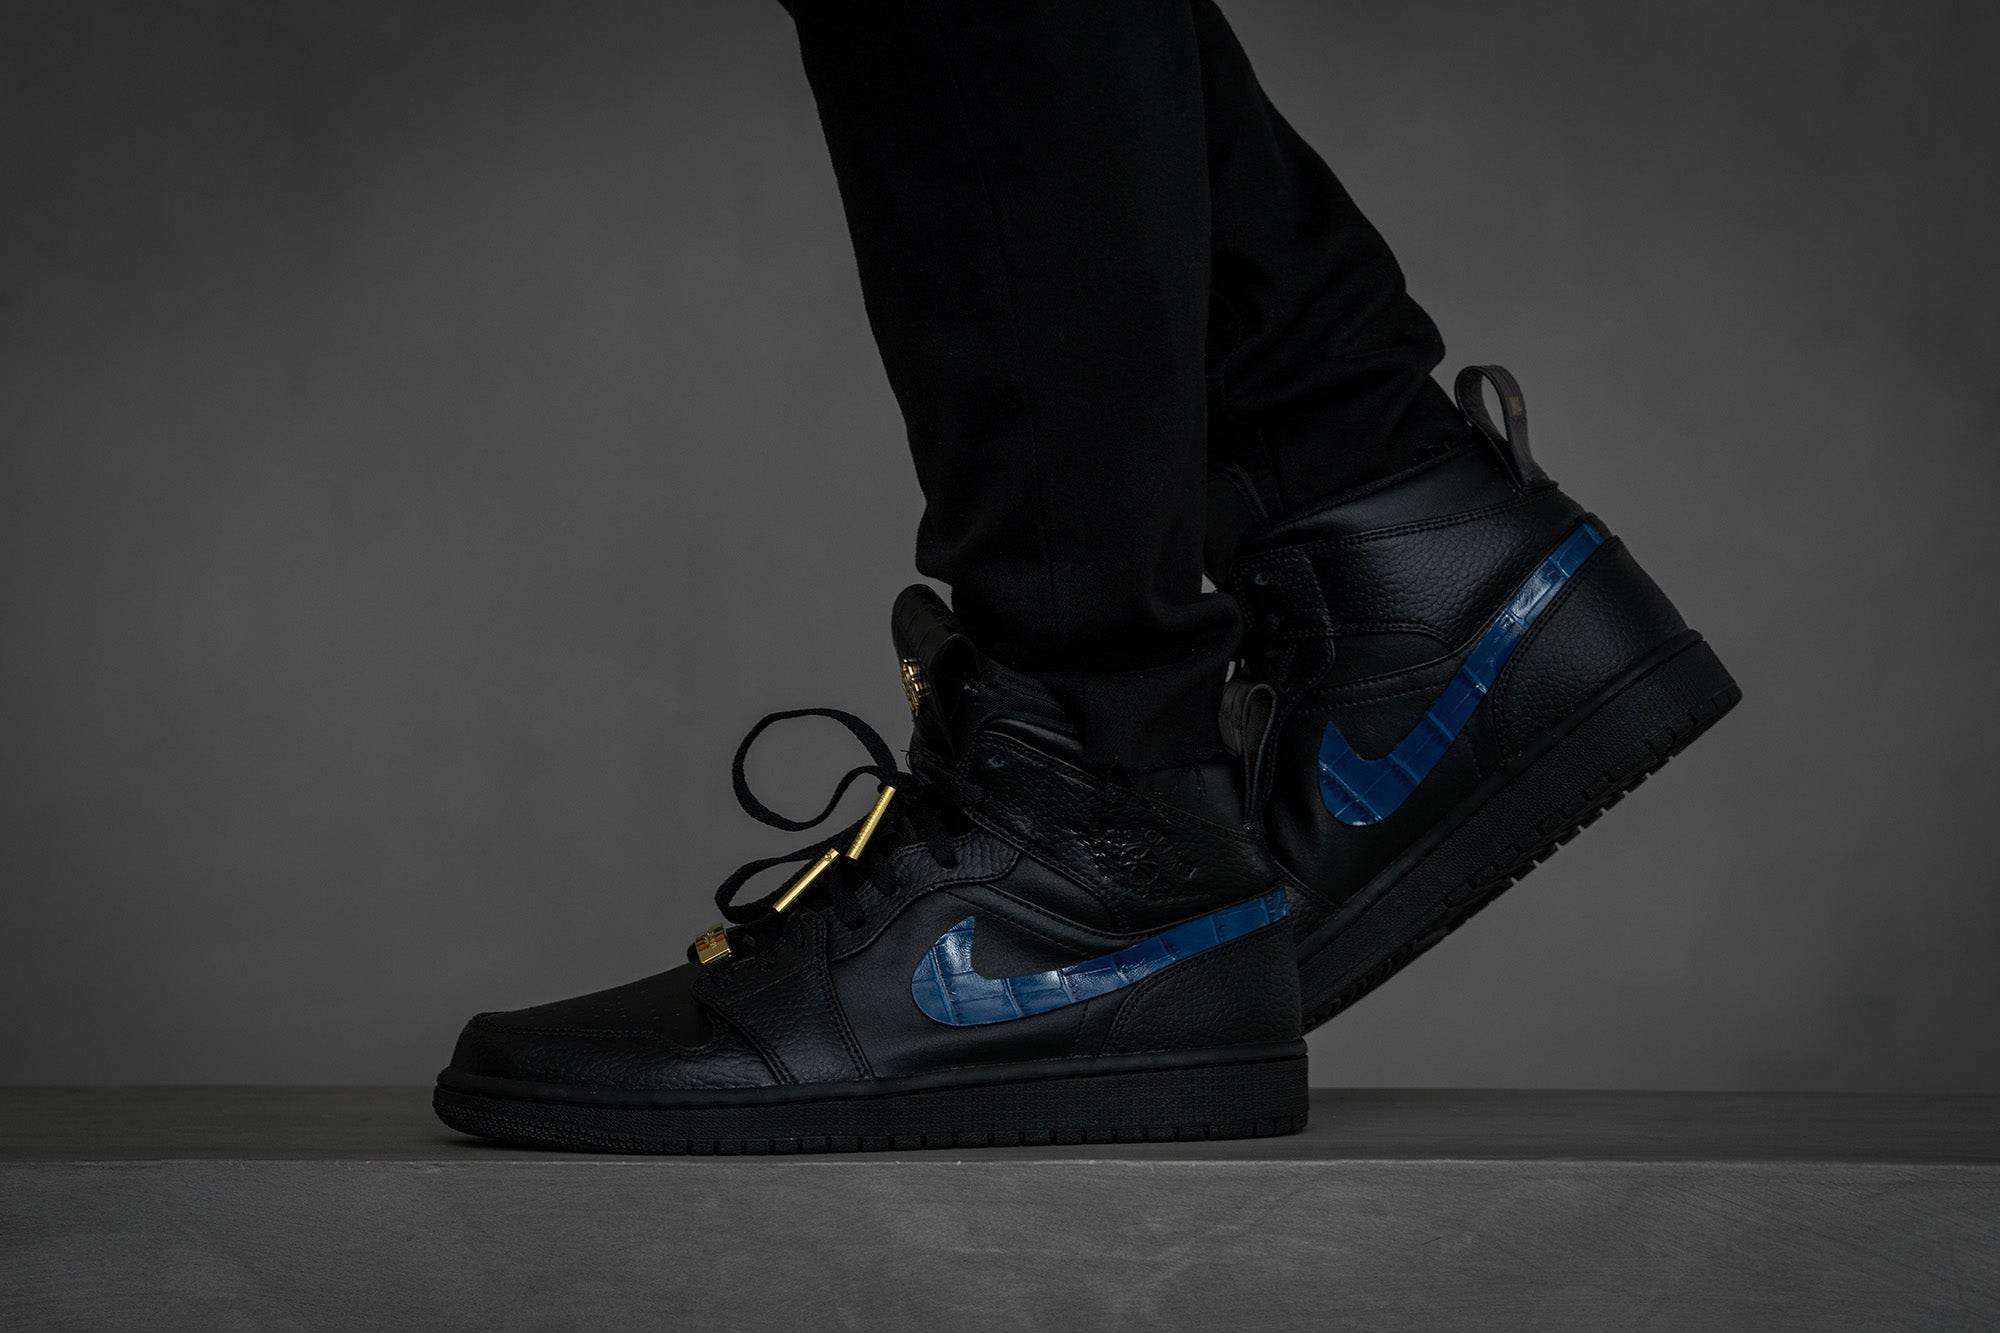 Customized Air Jordan 1 Sneakers by Golden Concept